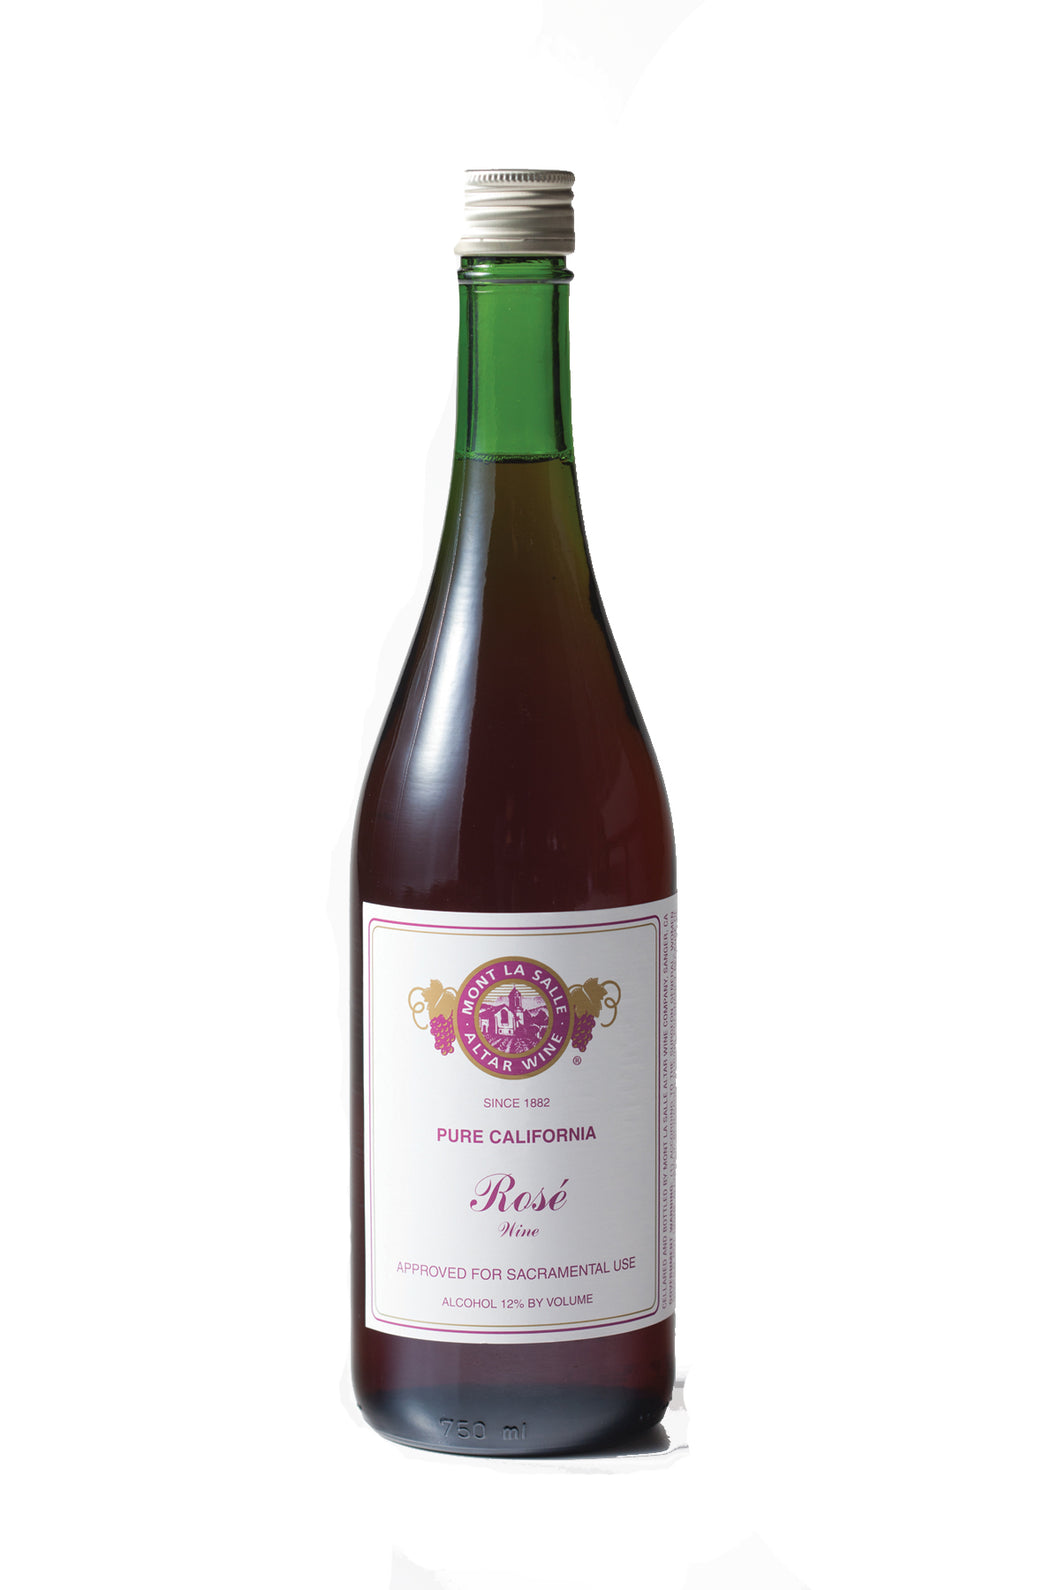 AMROSE: Mont La Salle Rose Wine [12 (750ml) Bottles Per Case]